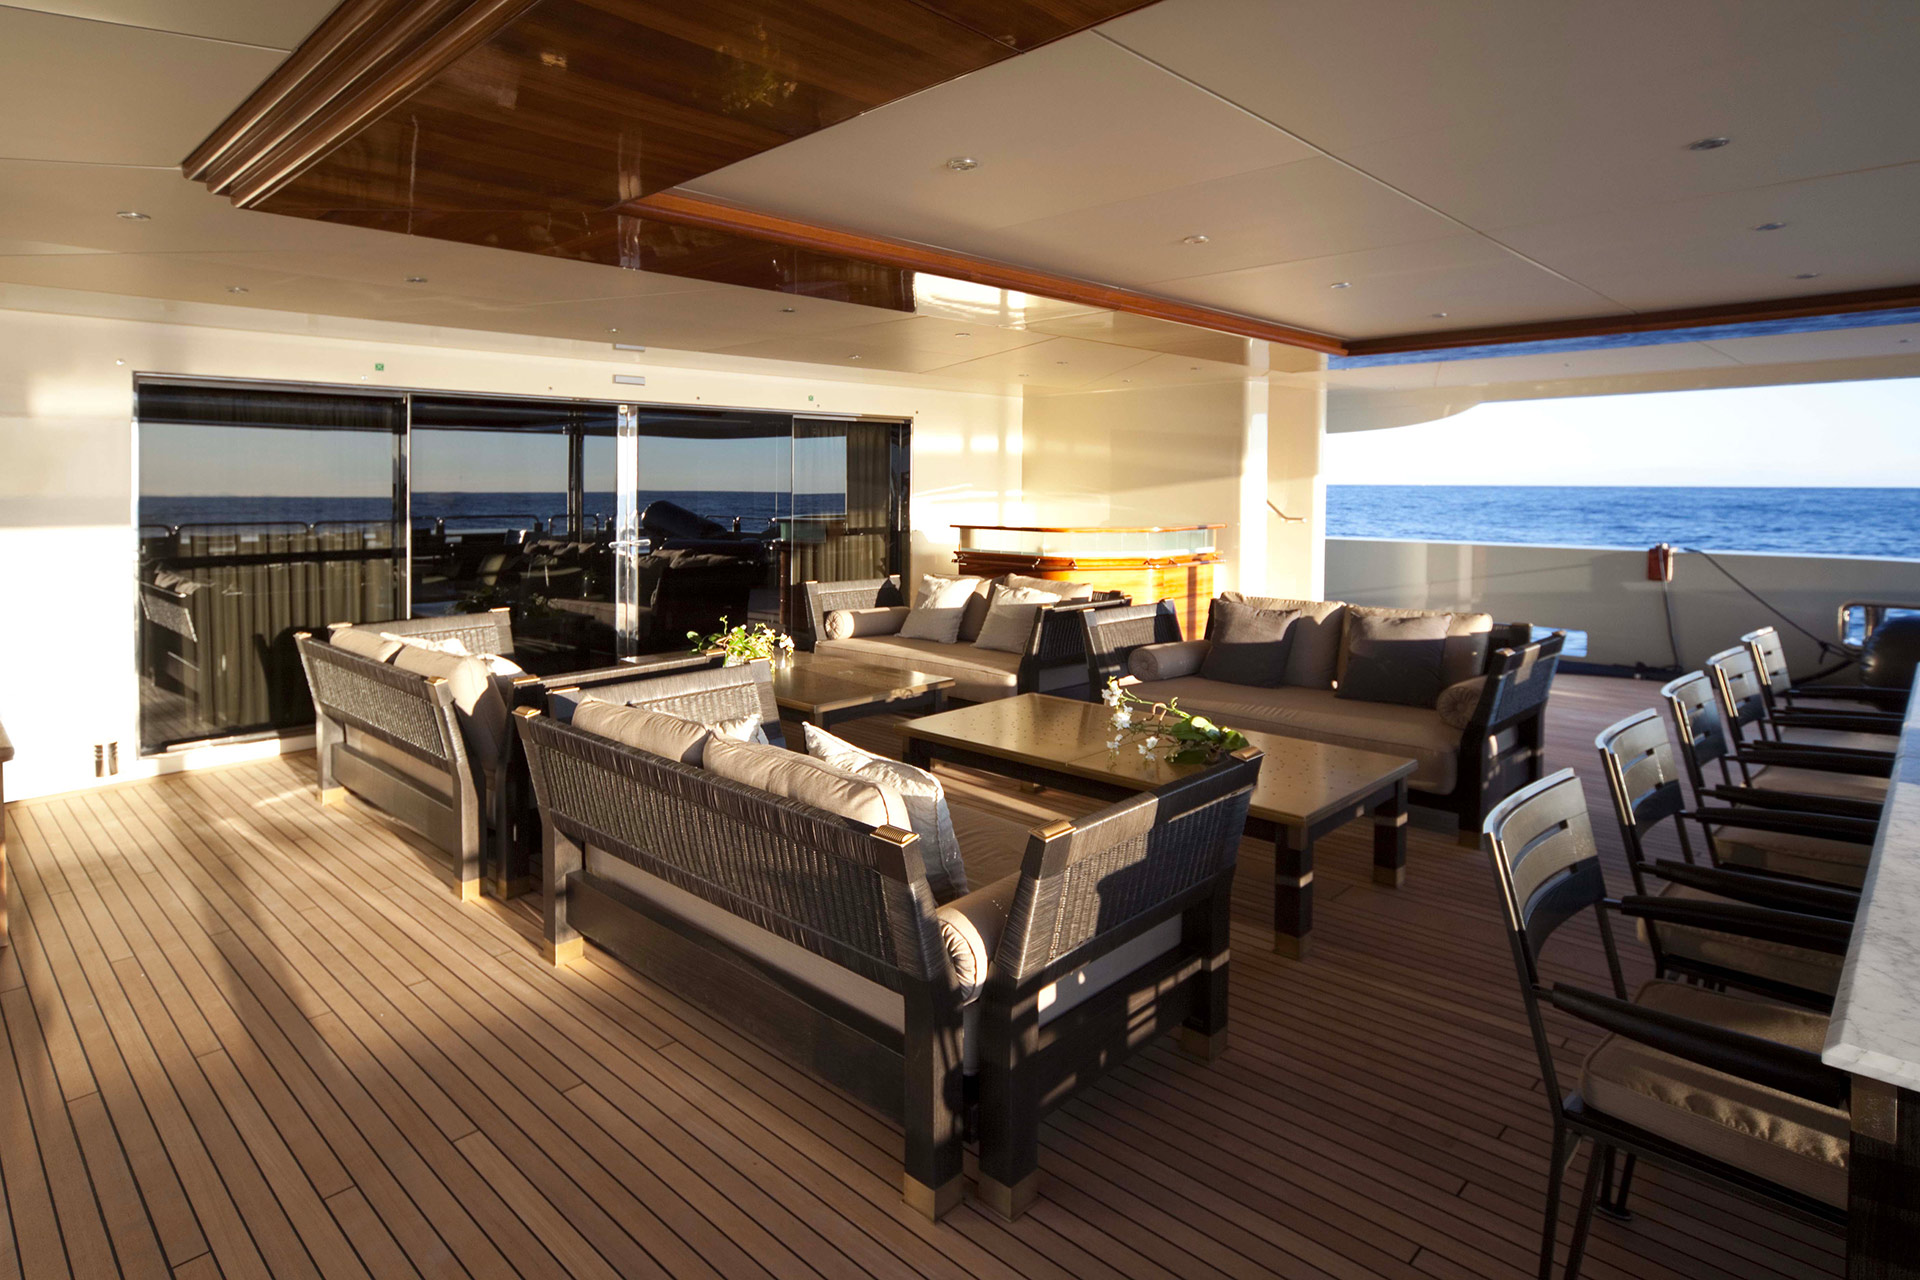 Deck of the AZTECA Yacht furnished with Promemoria | Promemoria